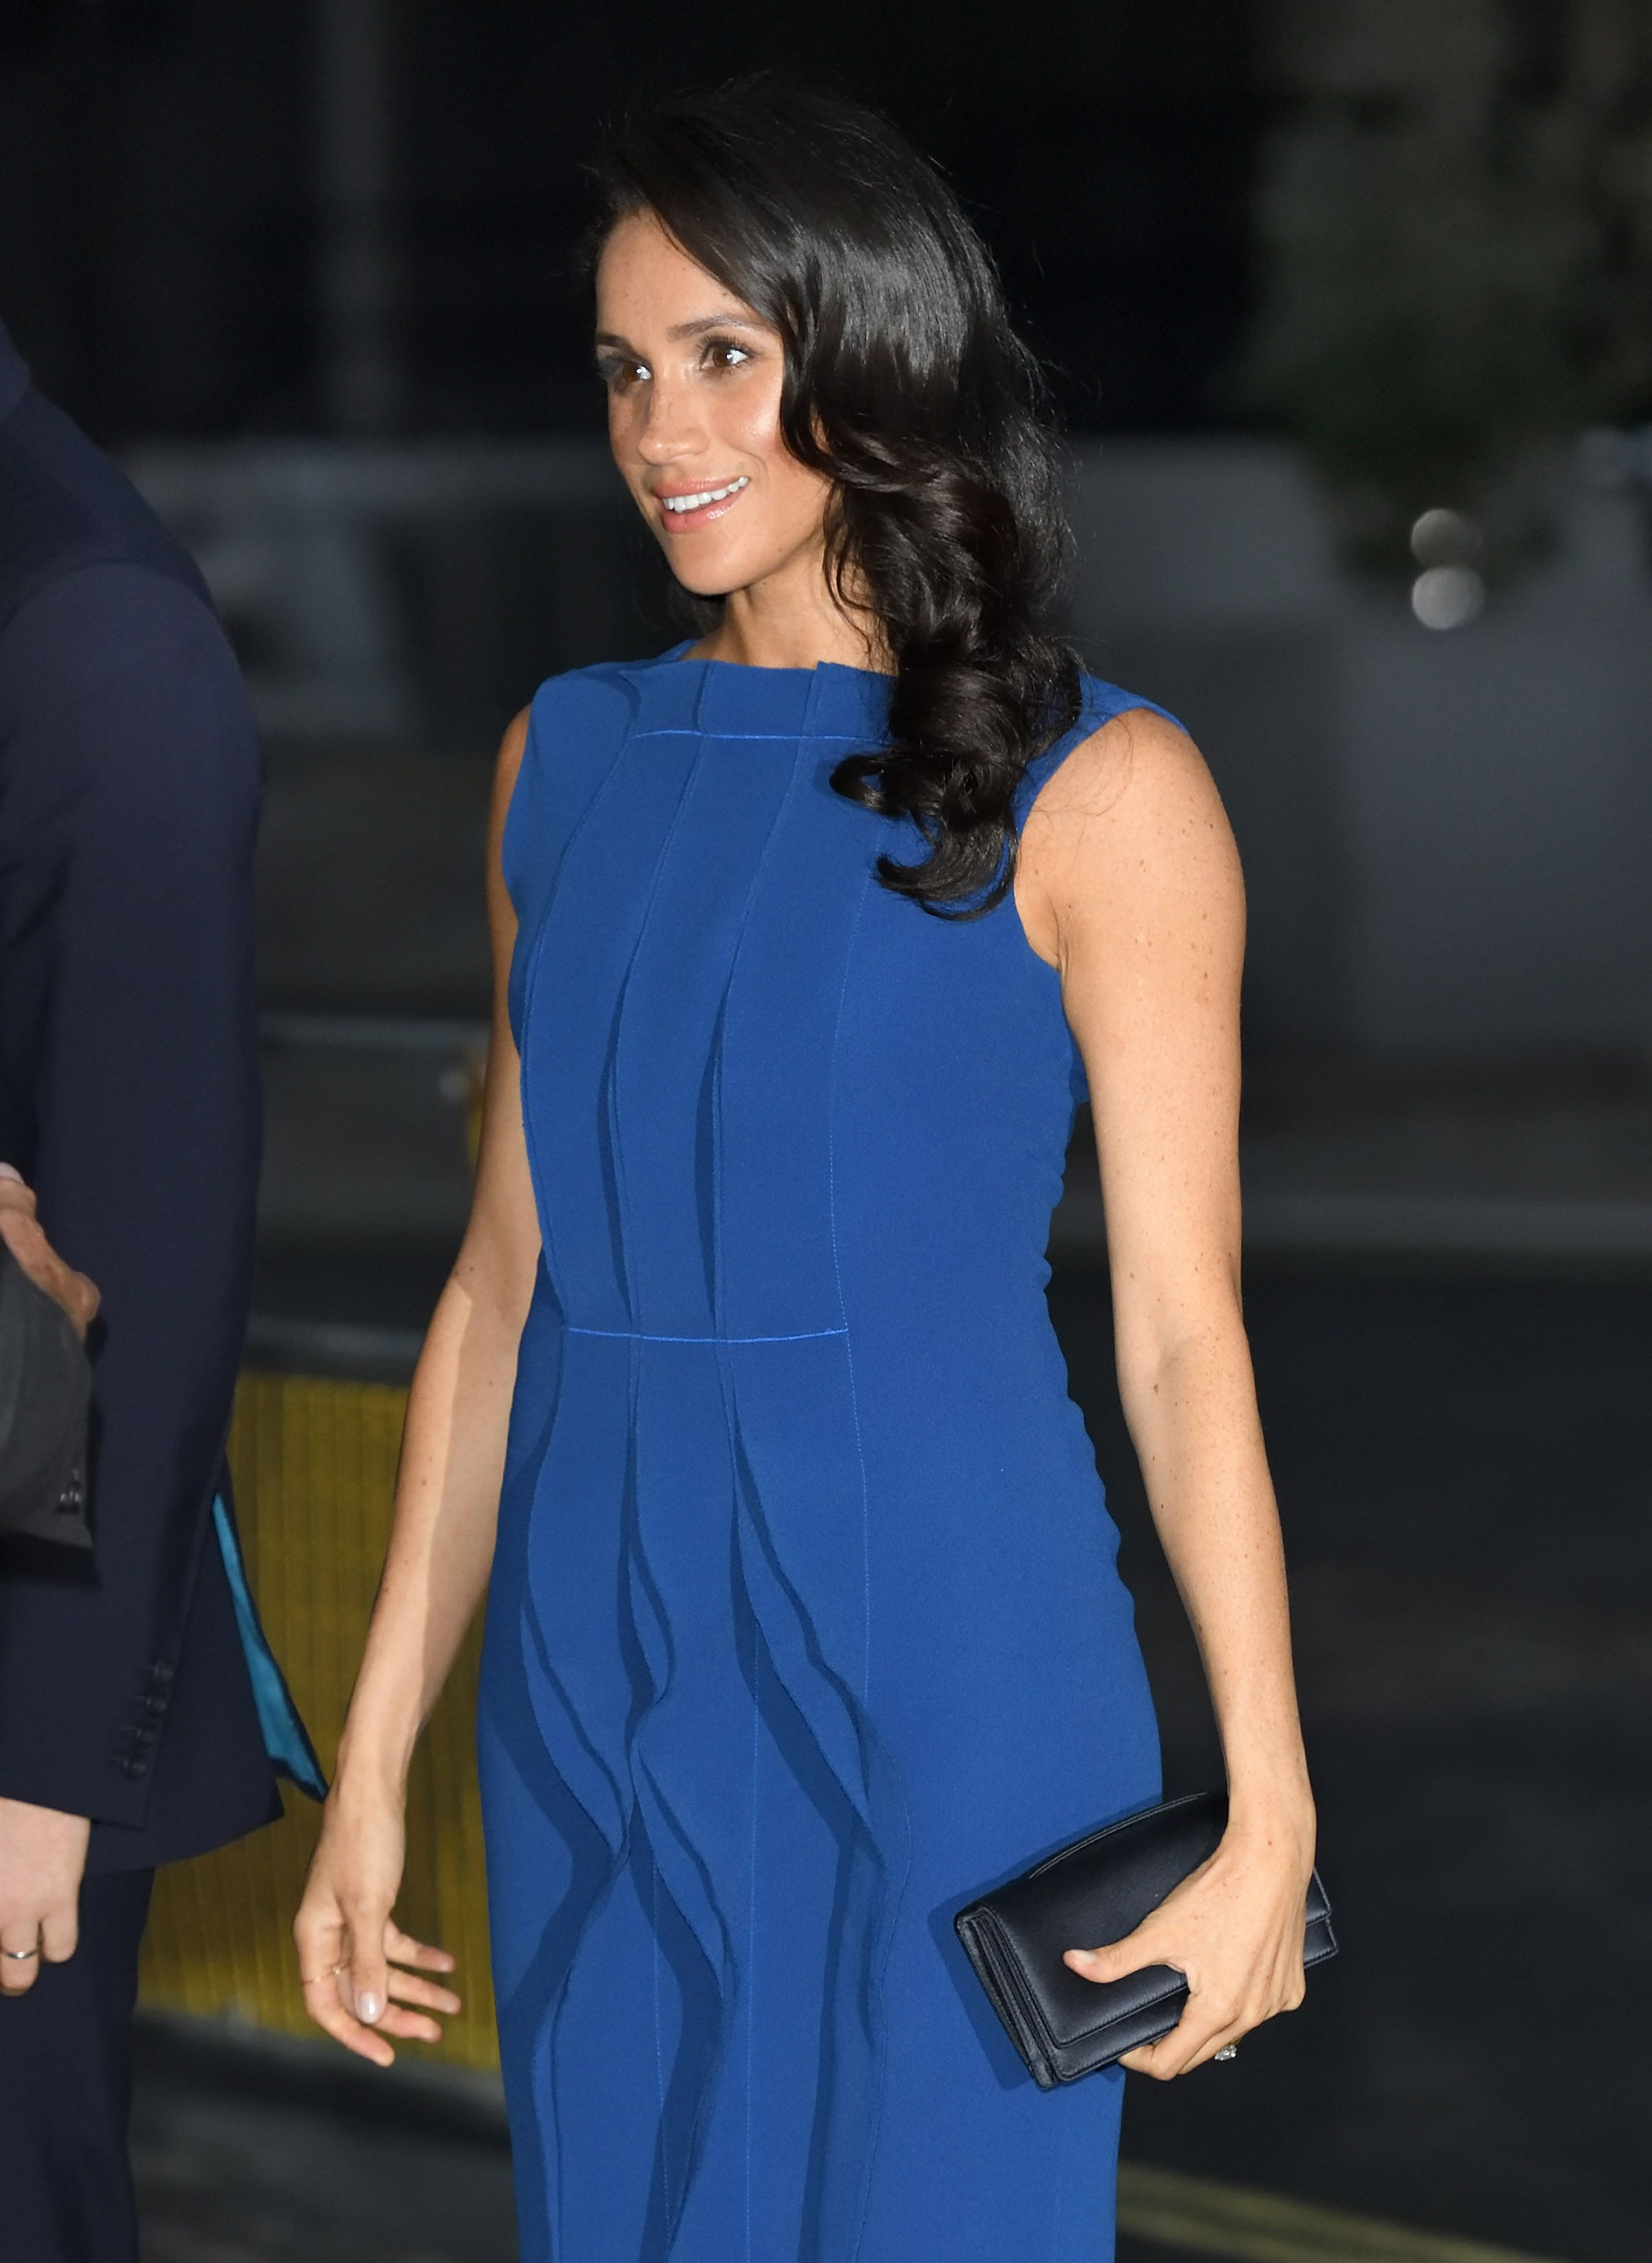 Meghan Markle S Debuts Jason Wu Spring Collection With Blue Dress Ahead Of His Show